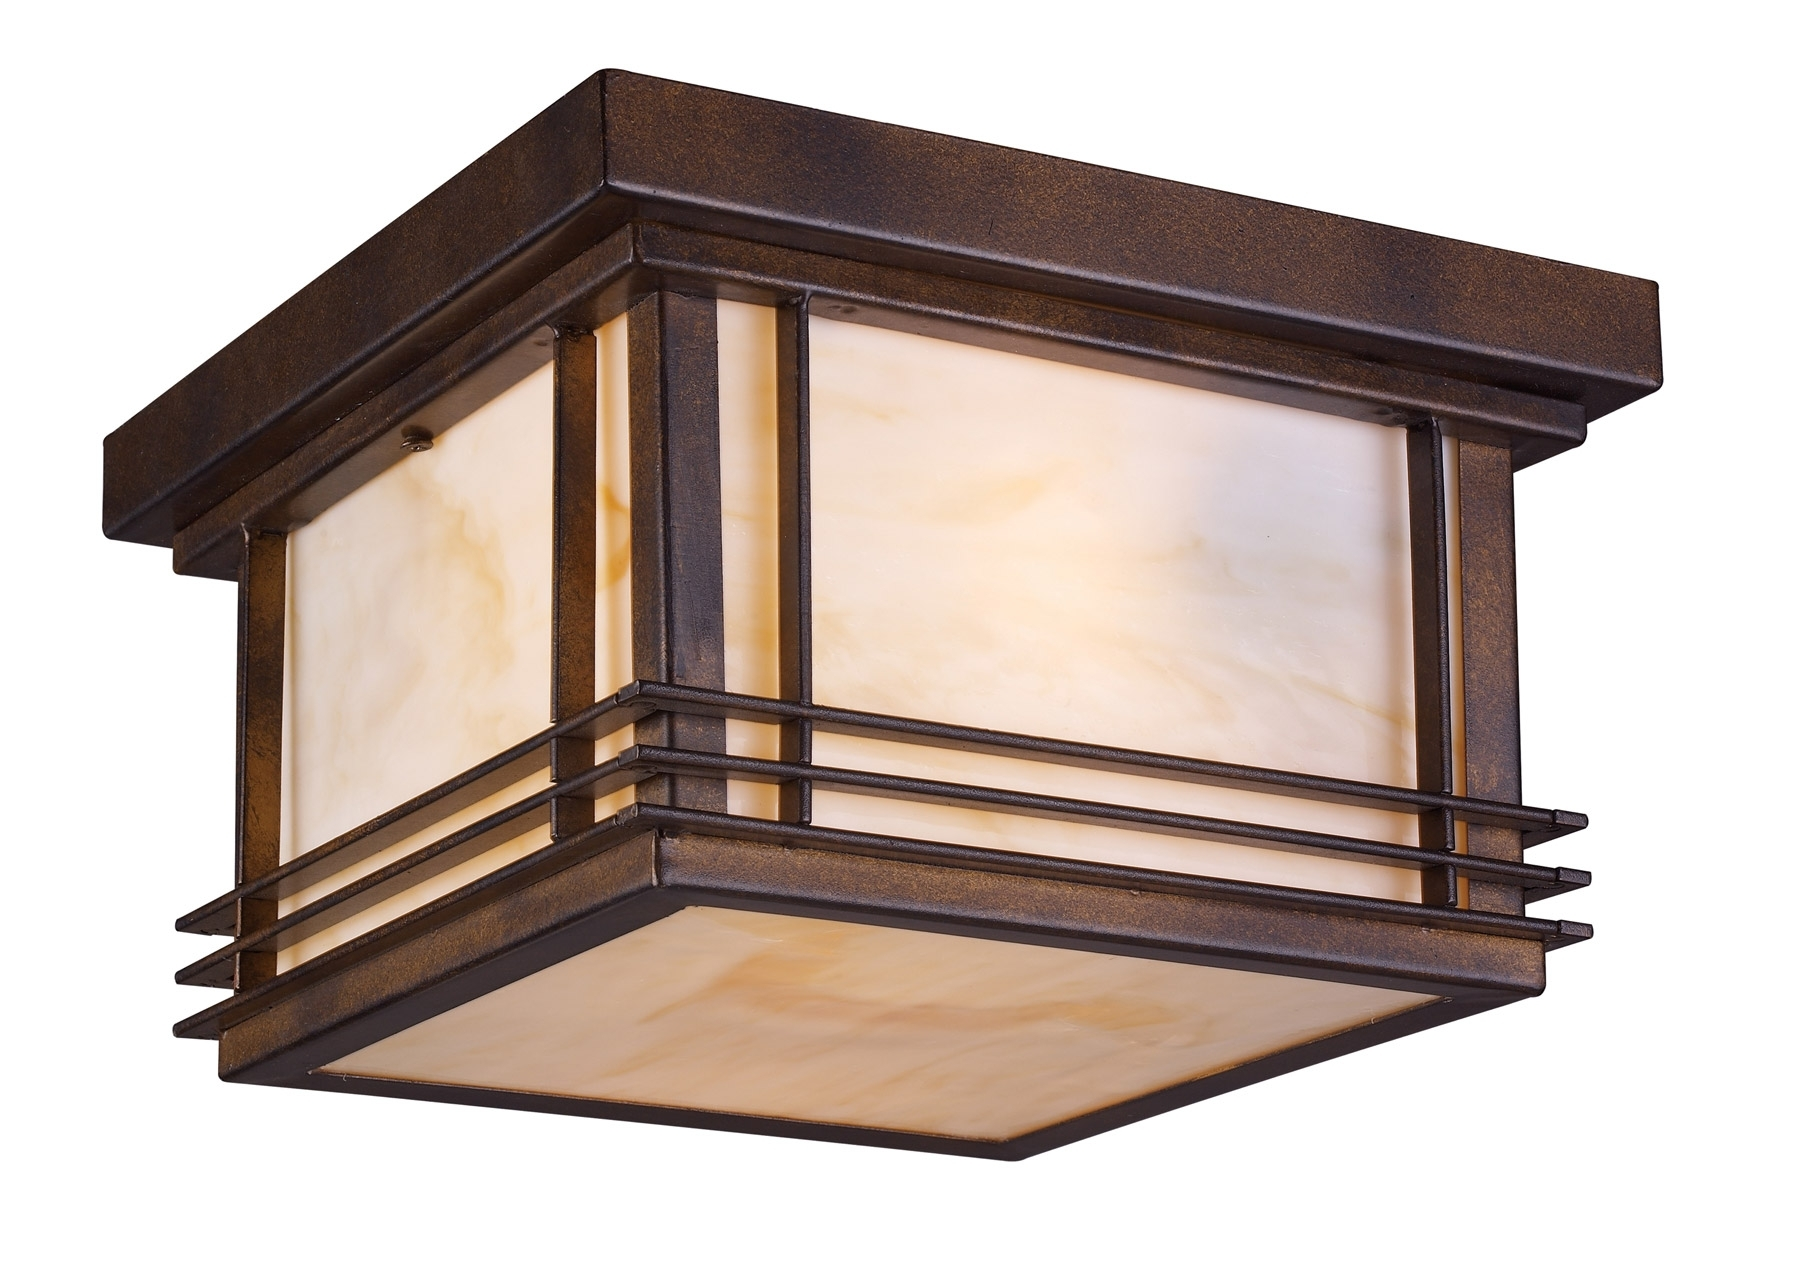 Favorite Light : Antique Drum Outdoor Ceiling Lights For Porch Beautiful Pertaining To Cheap Outdoor Ceiling Lights (View 9 of 20)